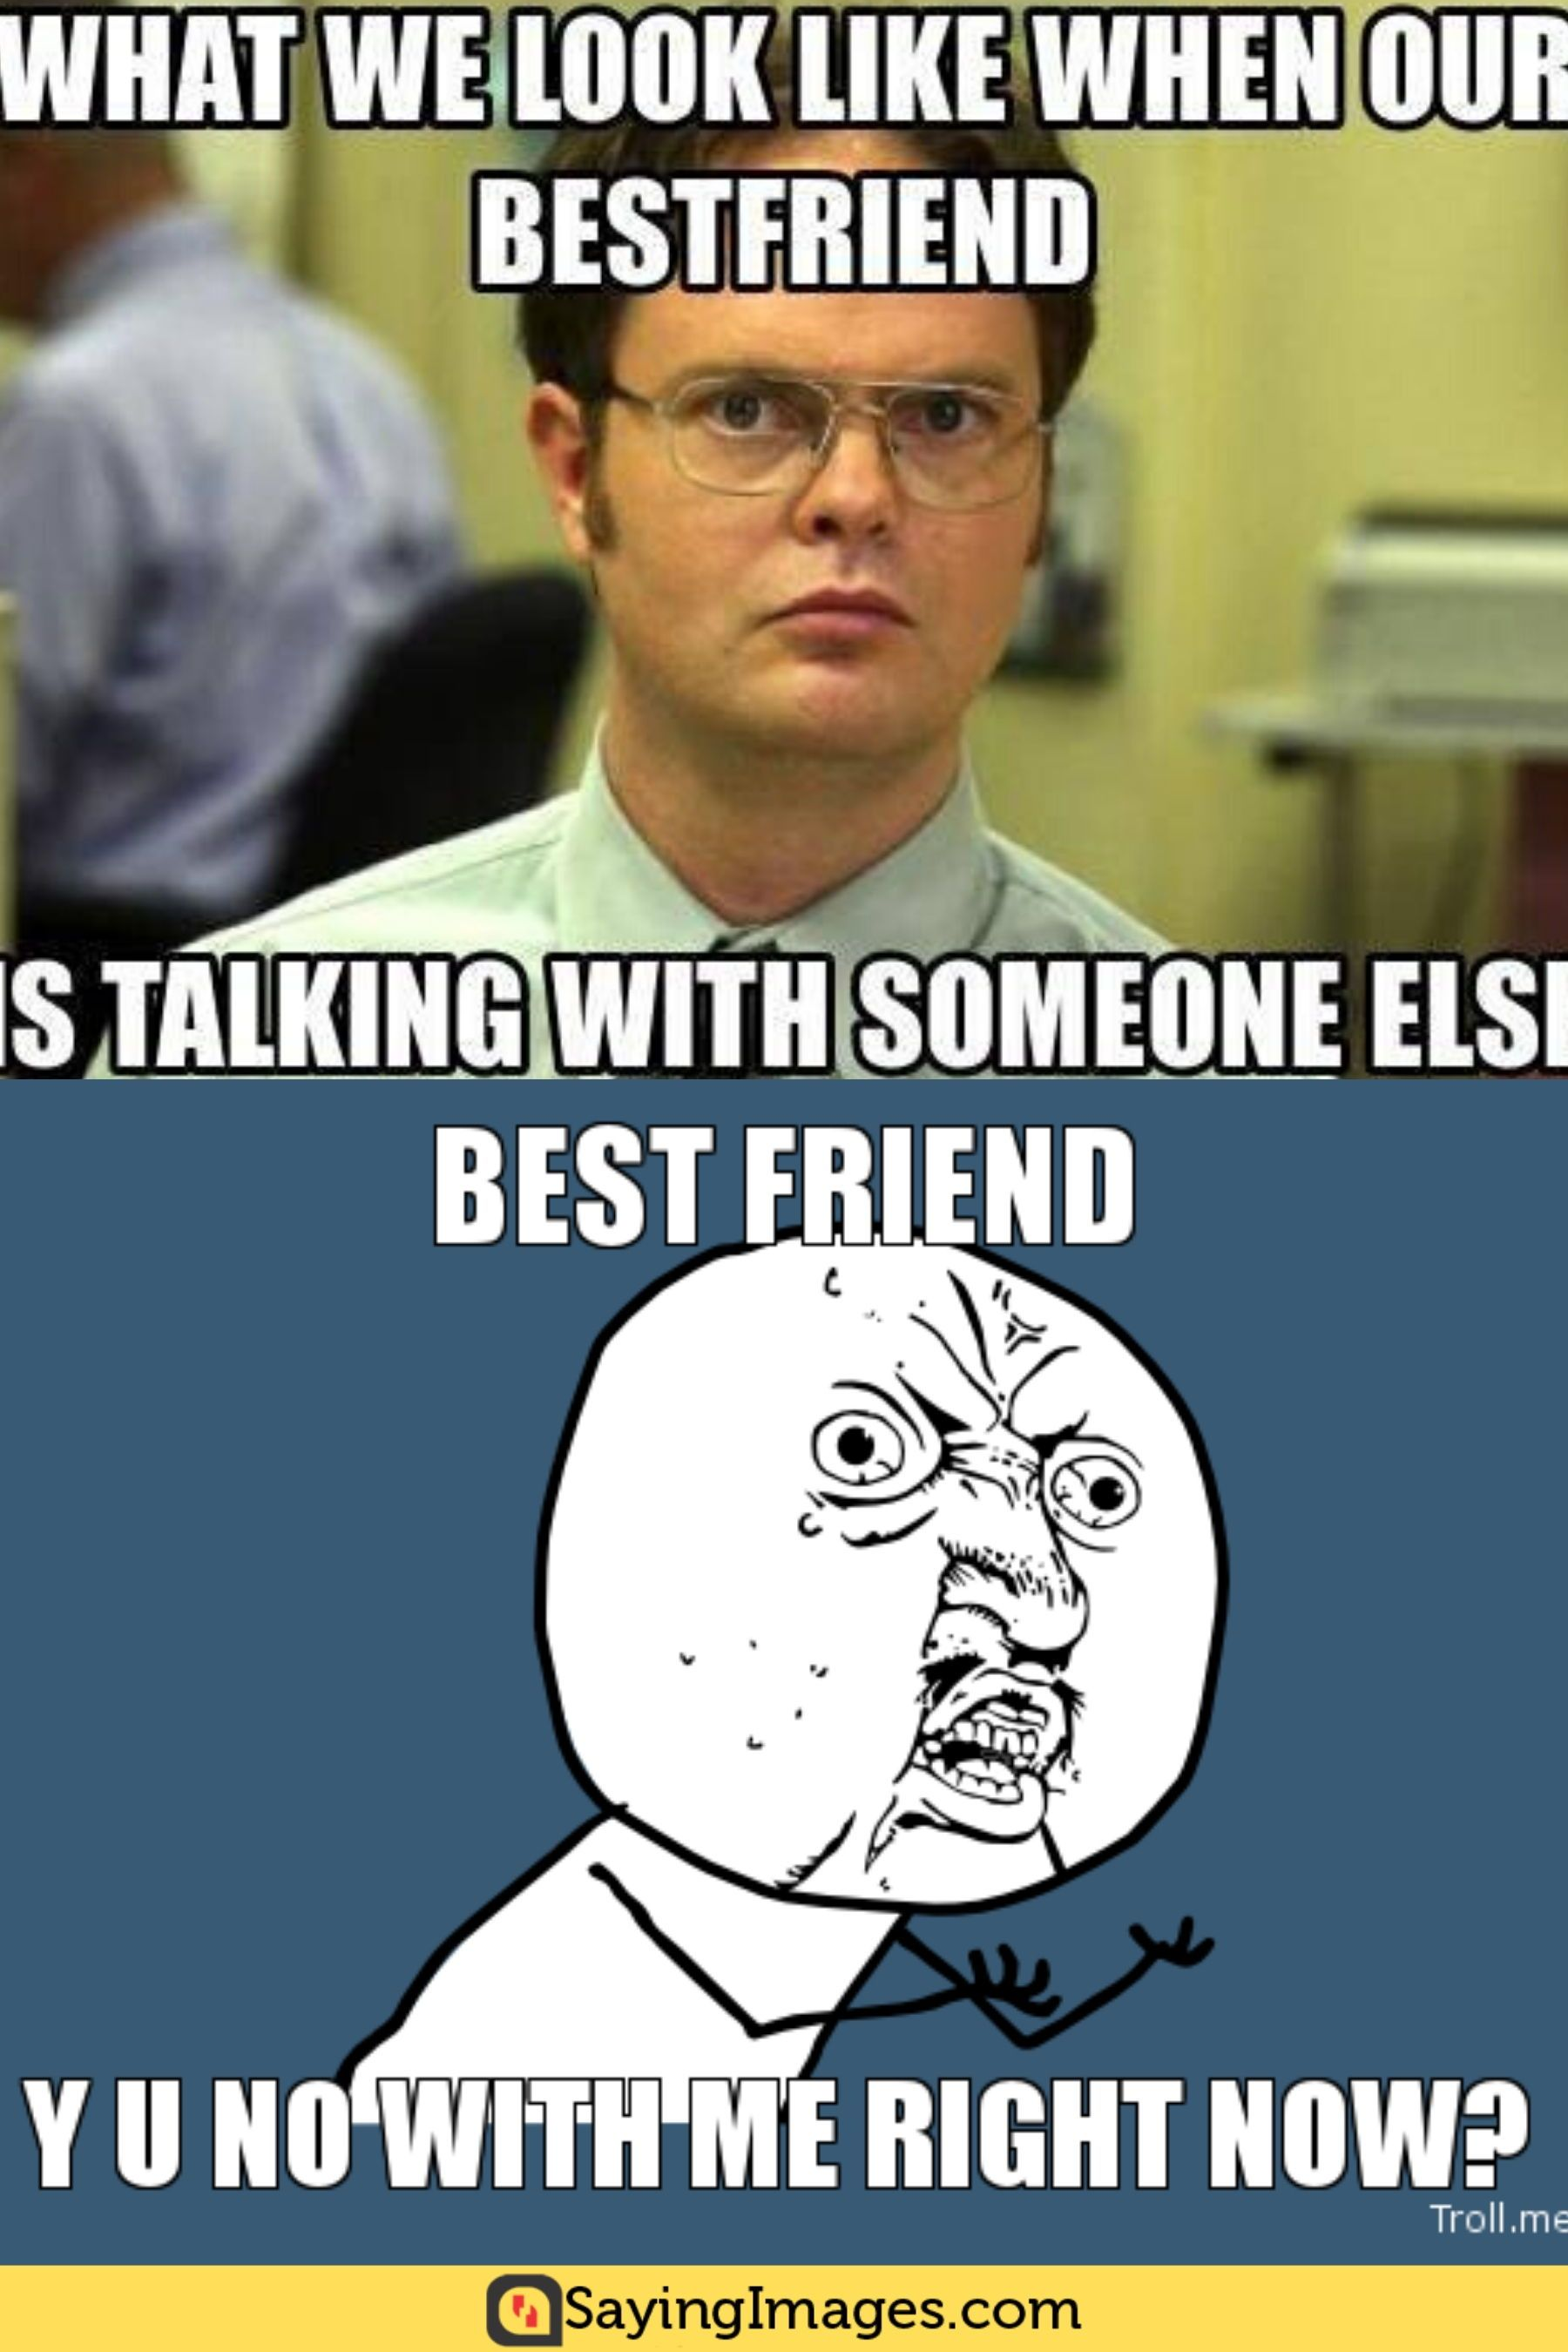 20 Best Friend Memes To Share With Your Bff Sayingimages Com Best Friend Meme Some Funny Jokes Best Friends